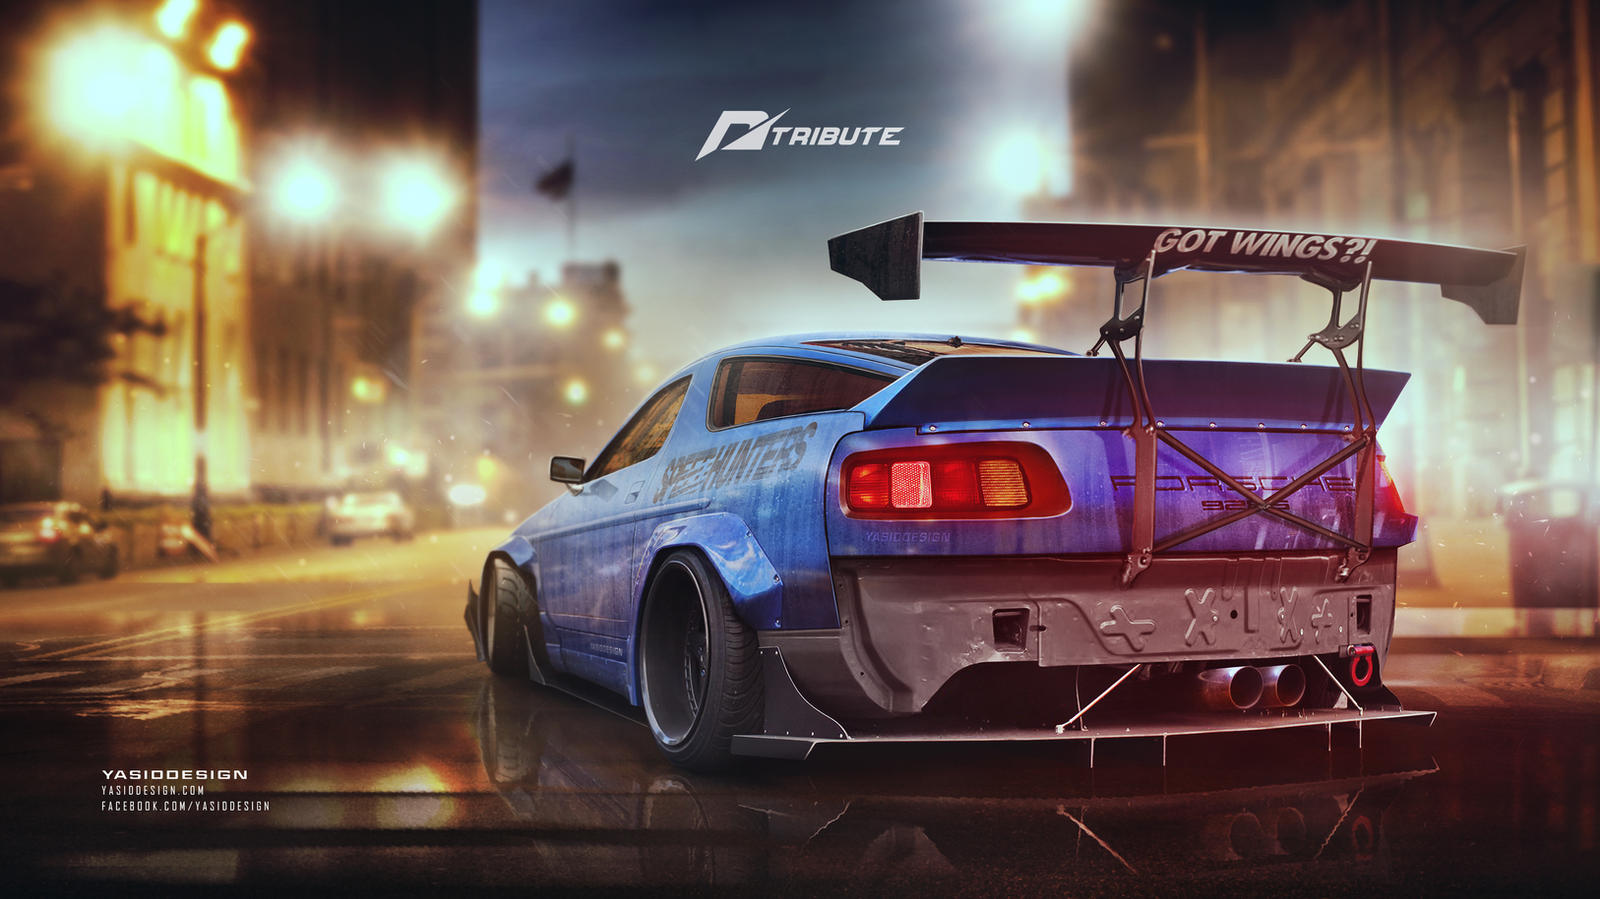 Porsche 928 Need for speed tribute by yasiddesign